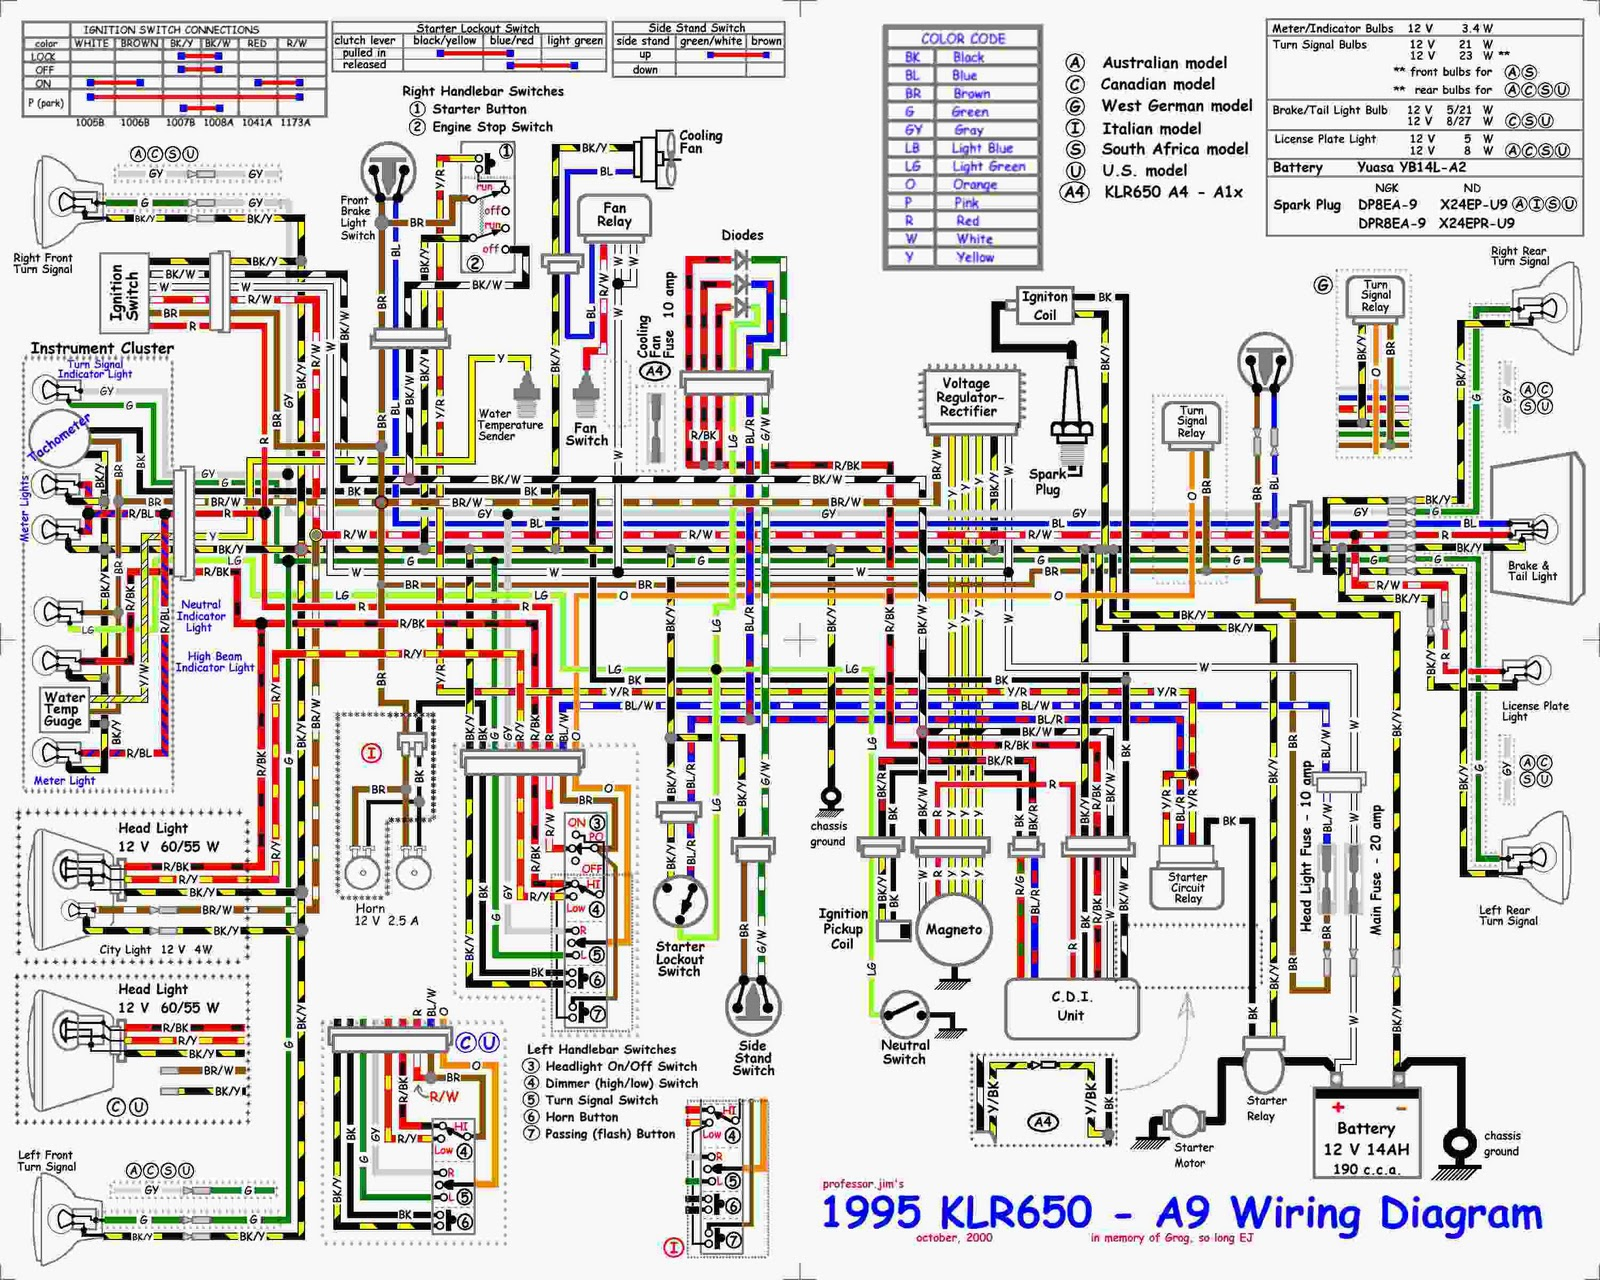 Kawasaki ignition system wiring diagram